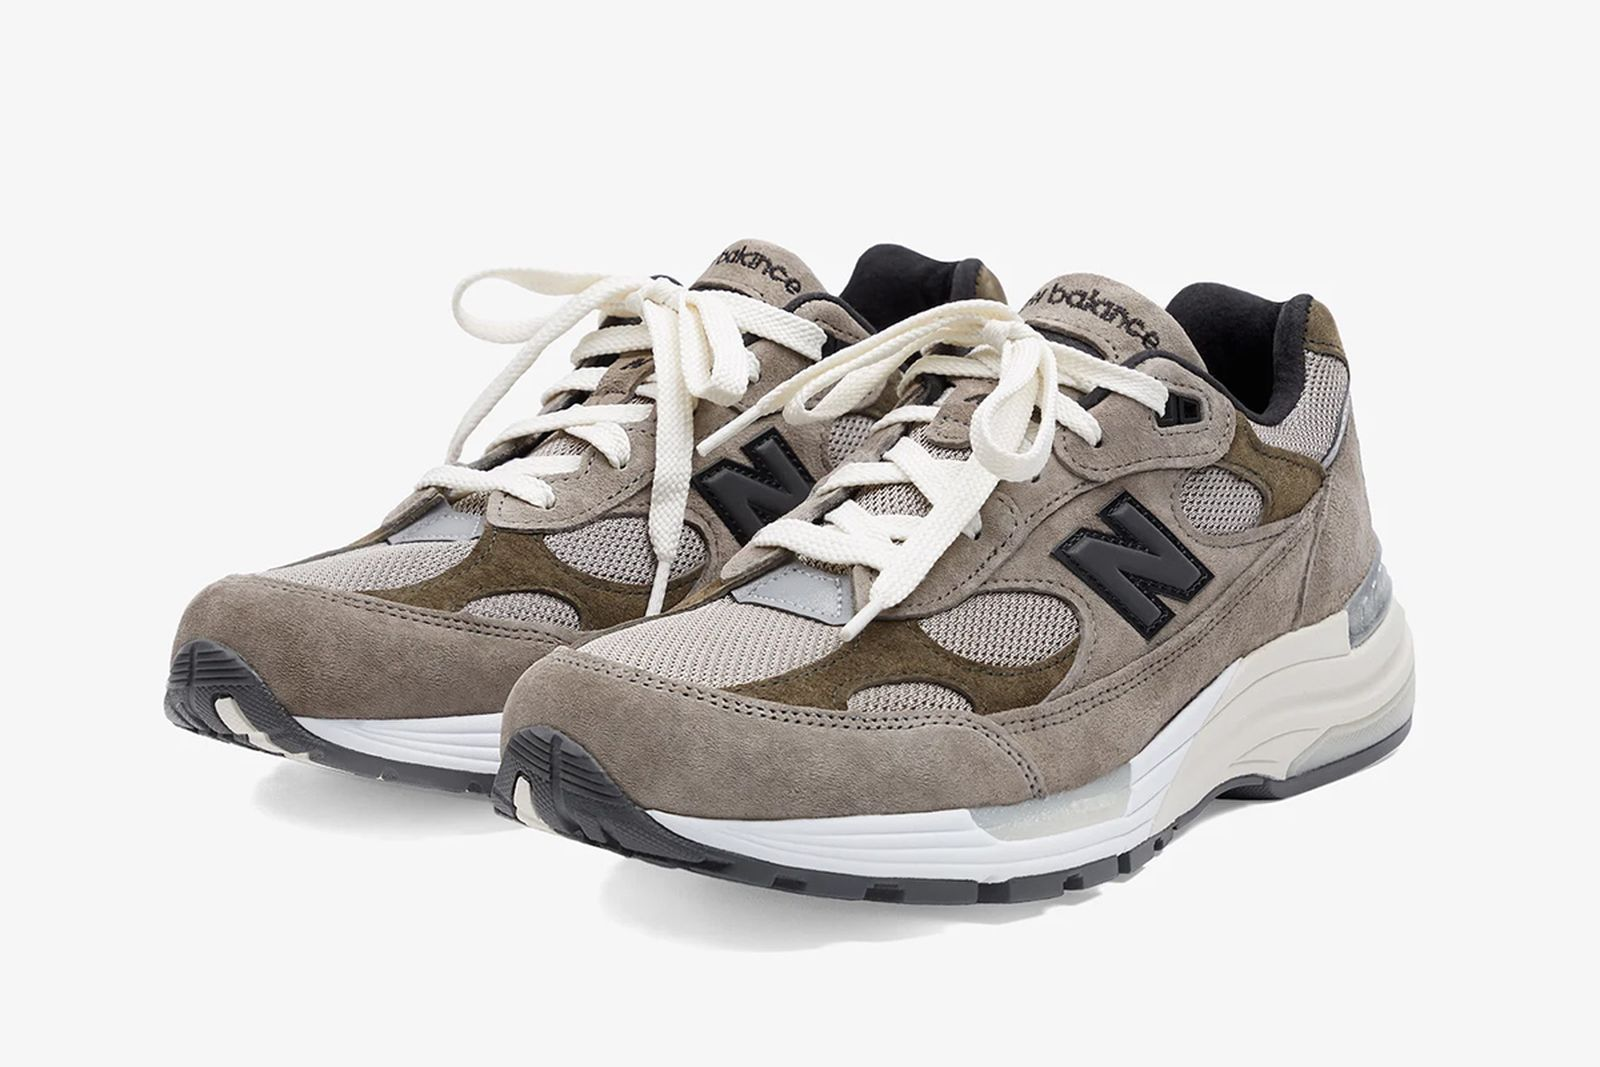 jjjjound-new-balance-992-release-date-price-02